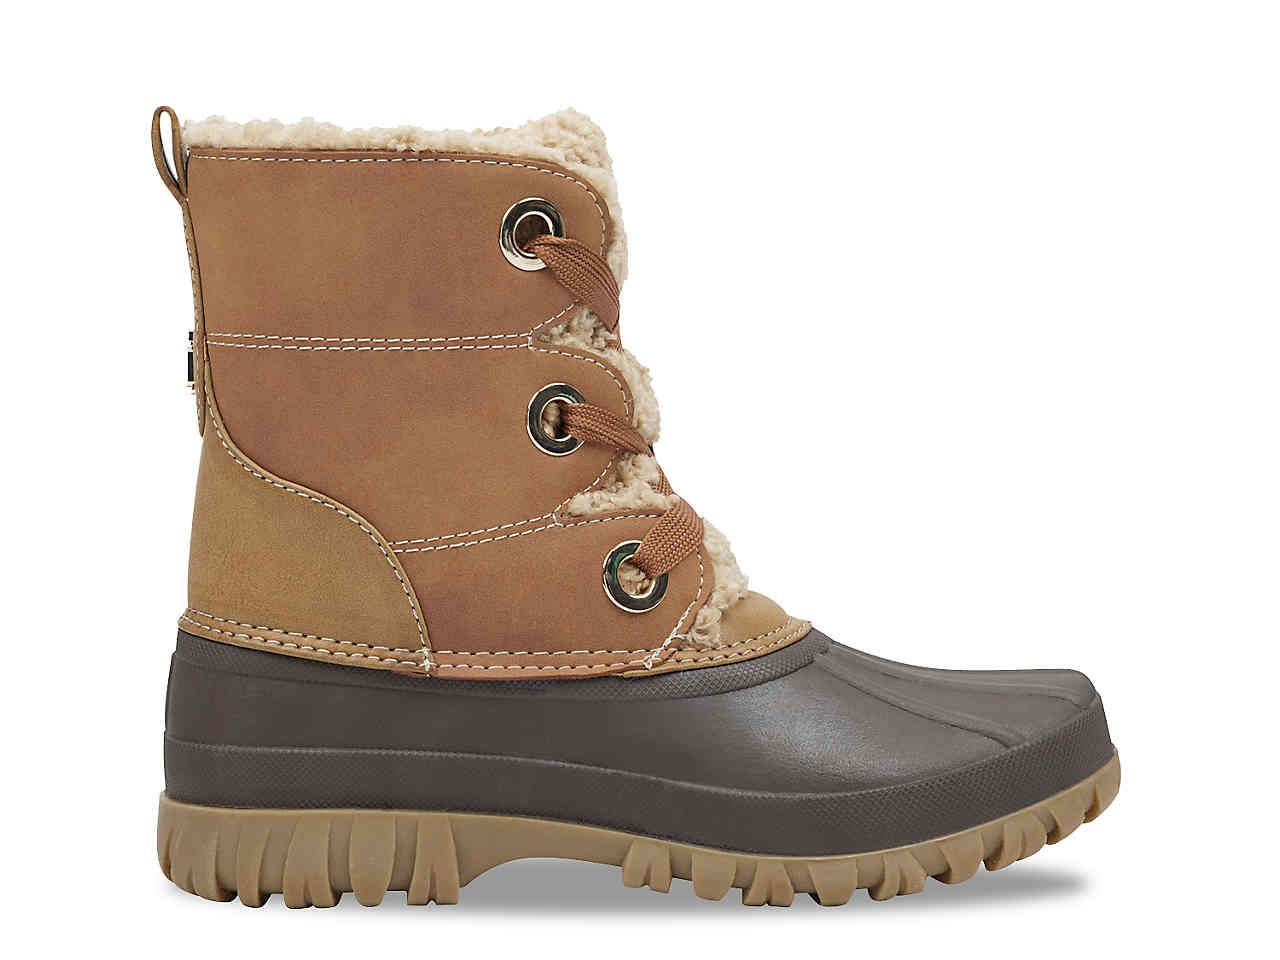 5ff236372 Tommy Hilfiger Marko Duck Boot Women s Shoes